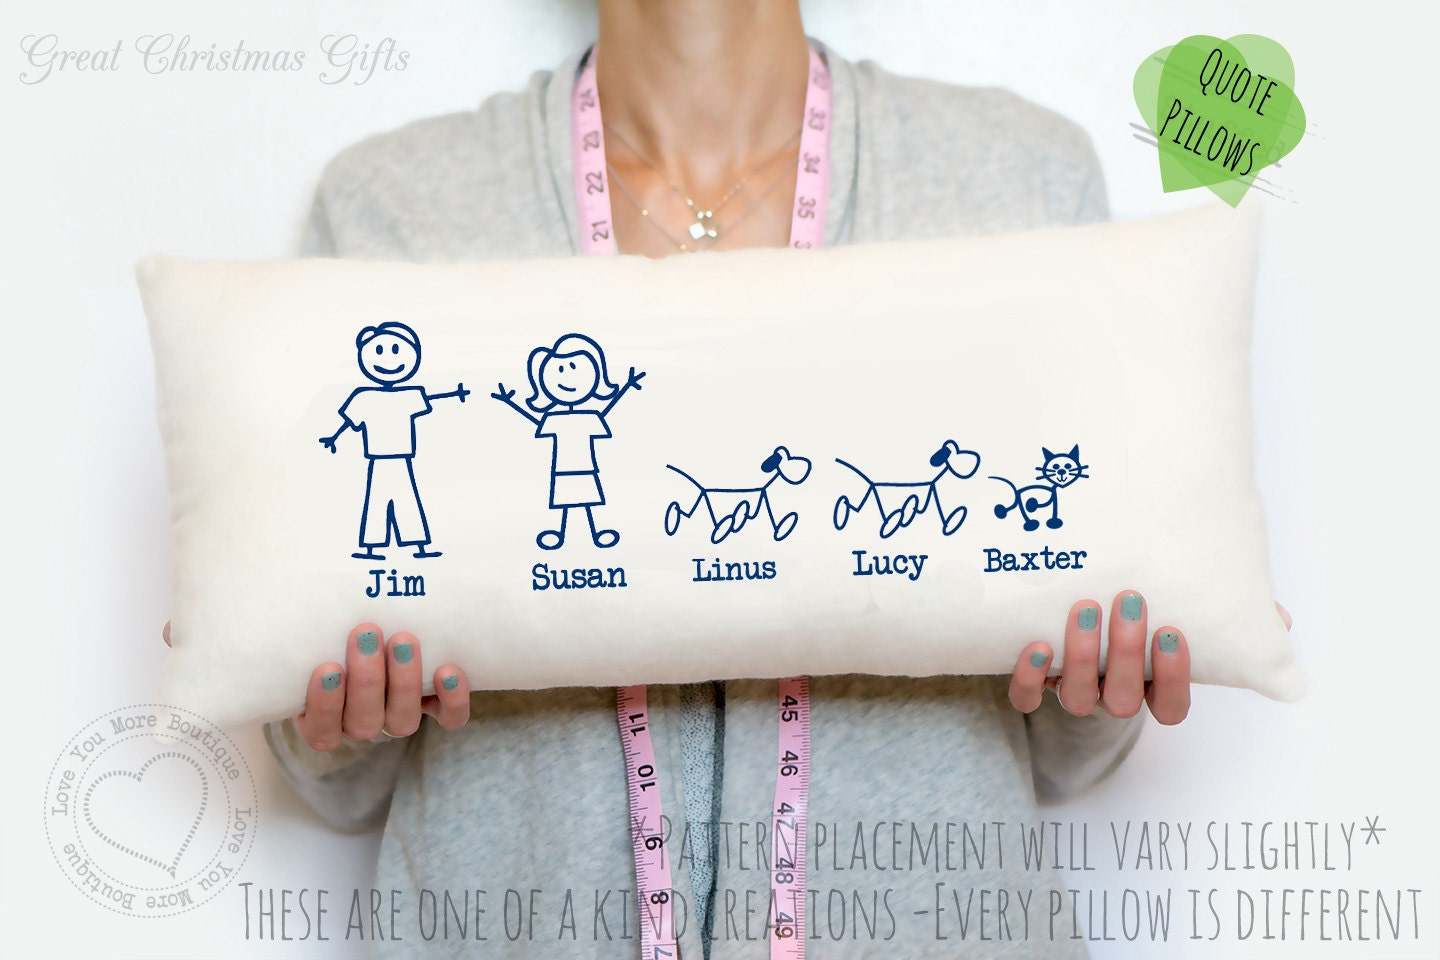 2 Year Wedding Anniversary Ideas Cotton : Year cotton anniversary gift Stick figure family pillow